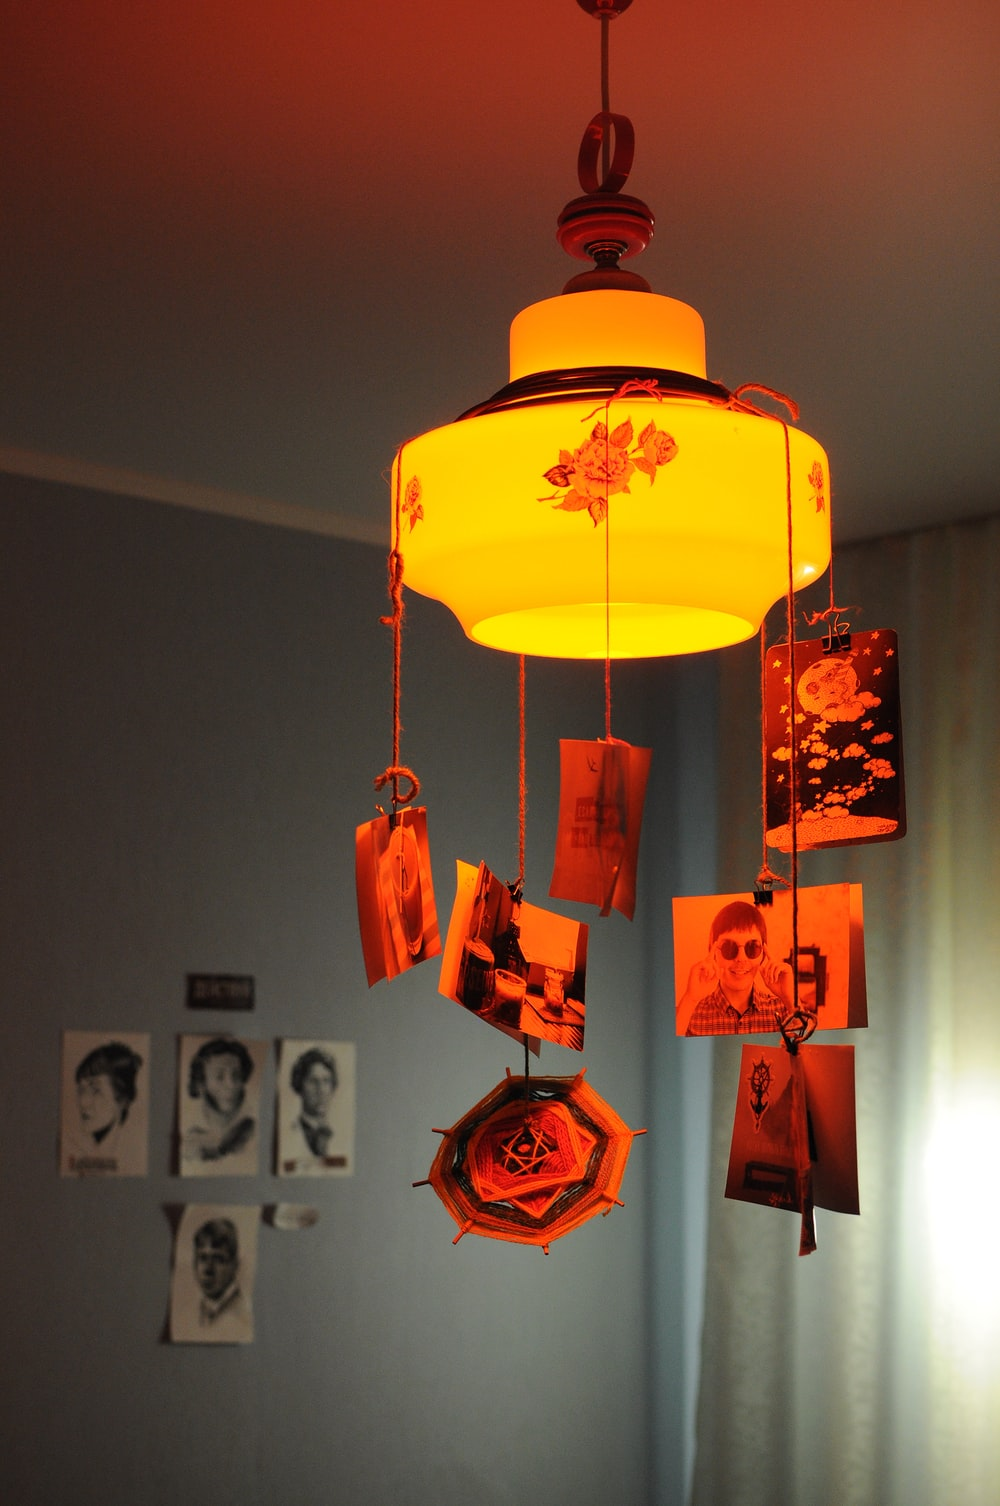 turned-on pendant lamp with hanging photos